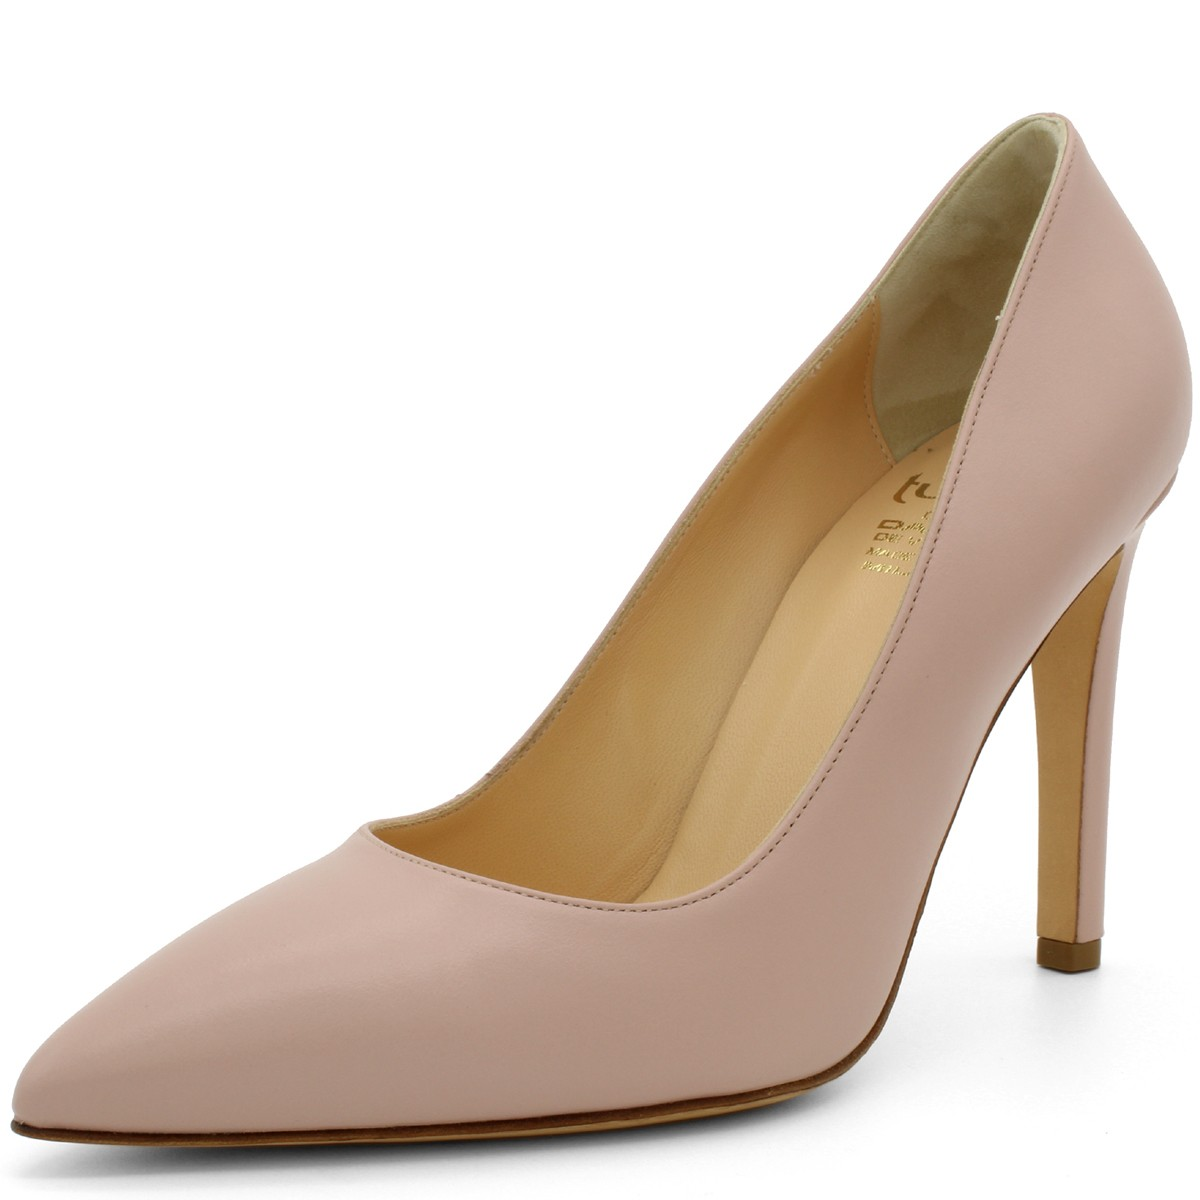 PINK POINTED-TOE 100 PUMPS